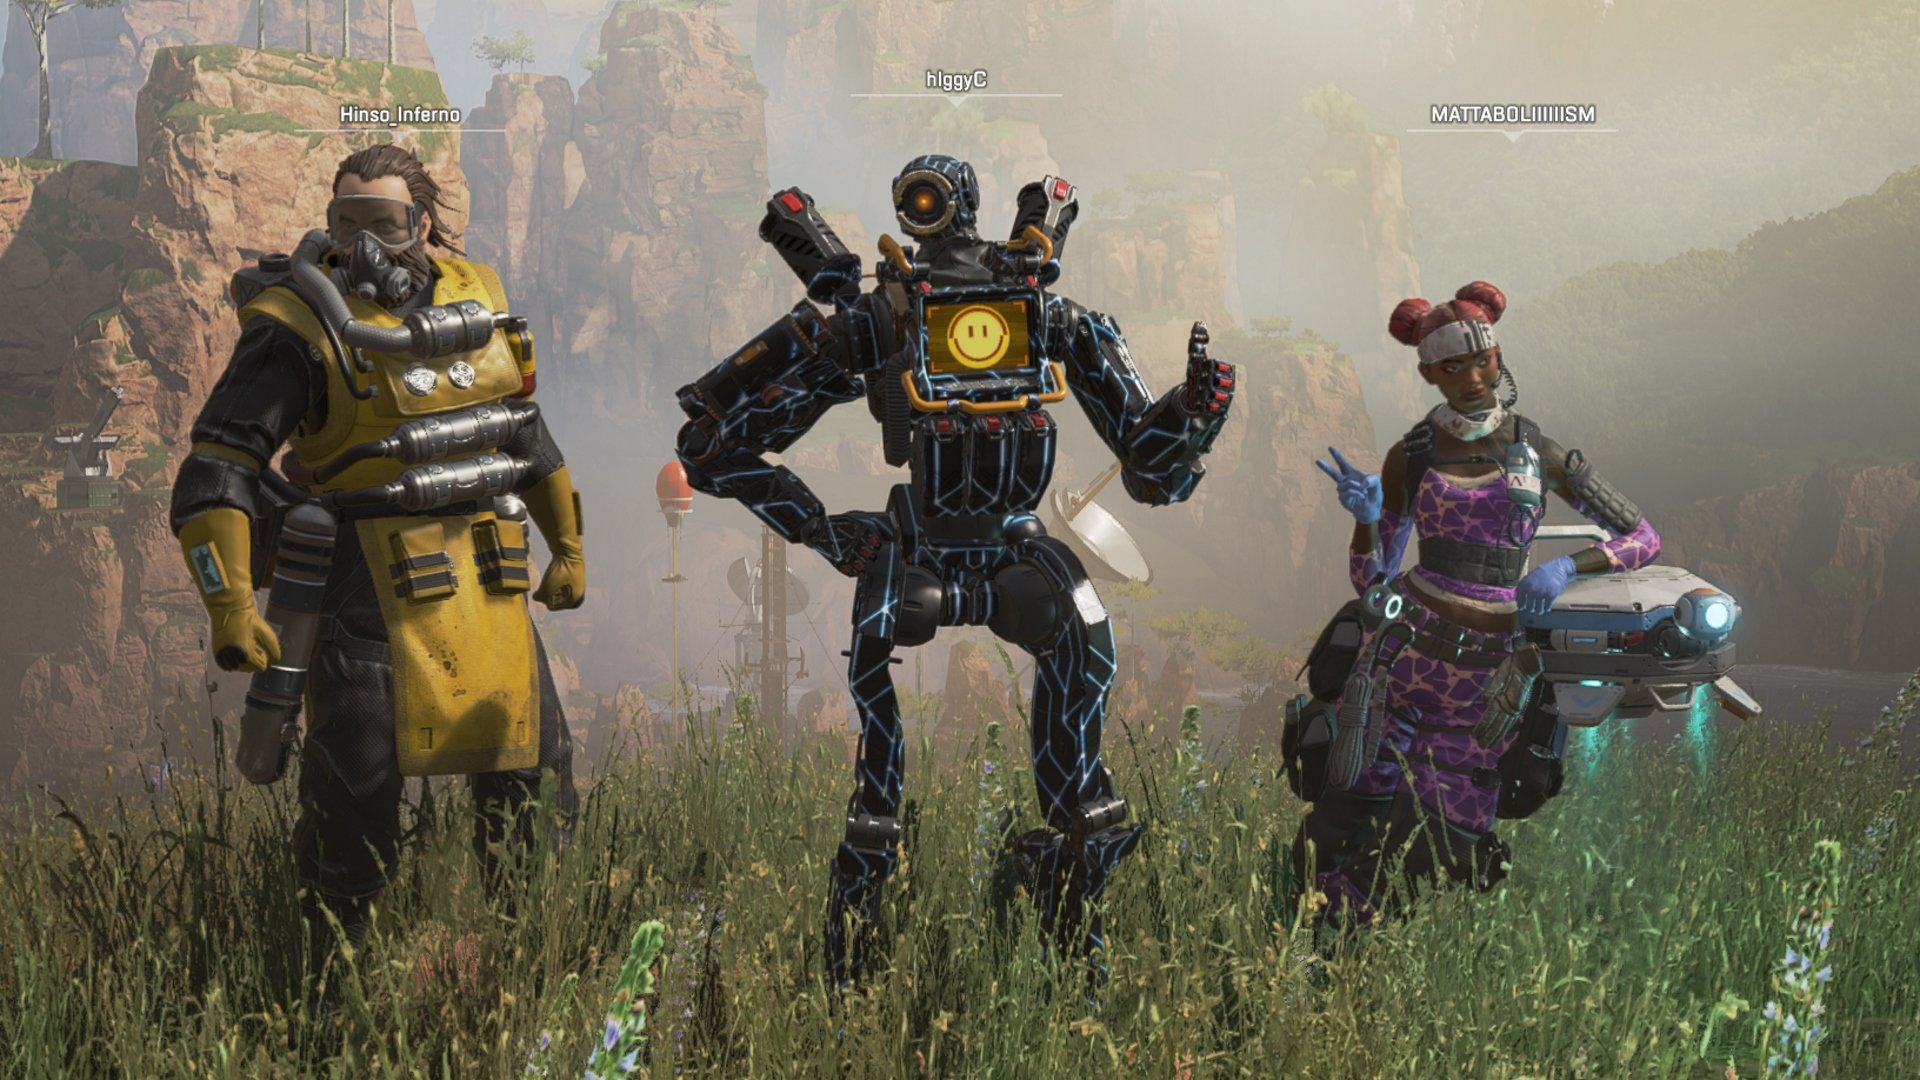 Where To Drop And Find The Best Loot In Apex Legends Allgamers